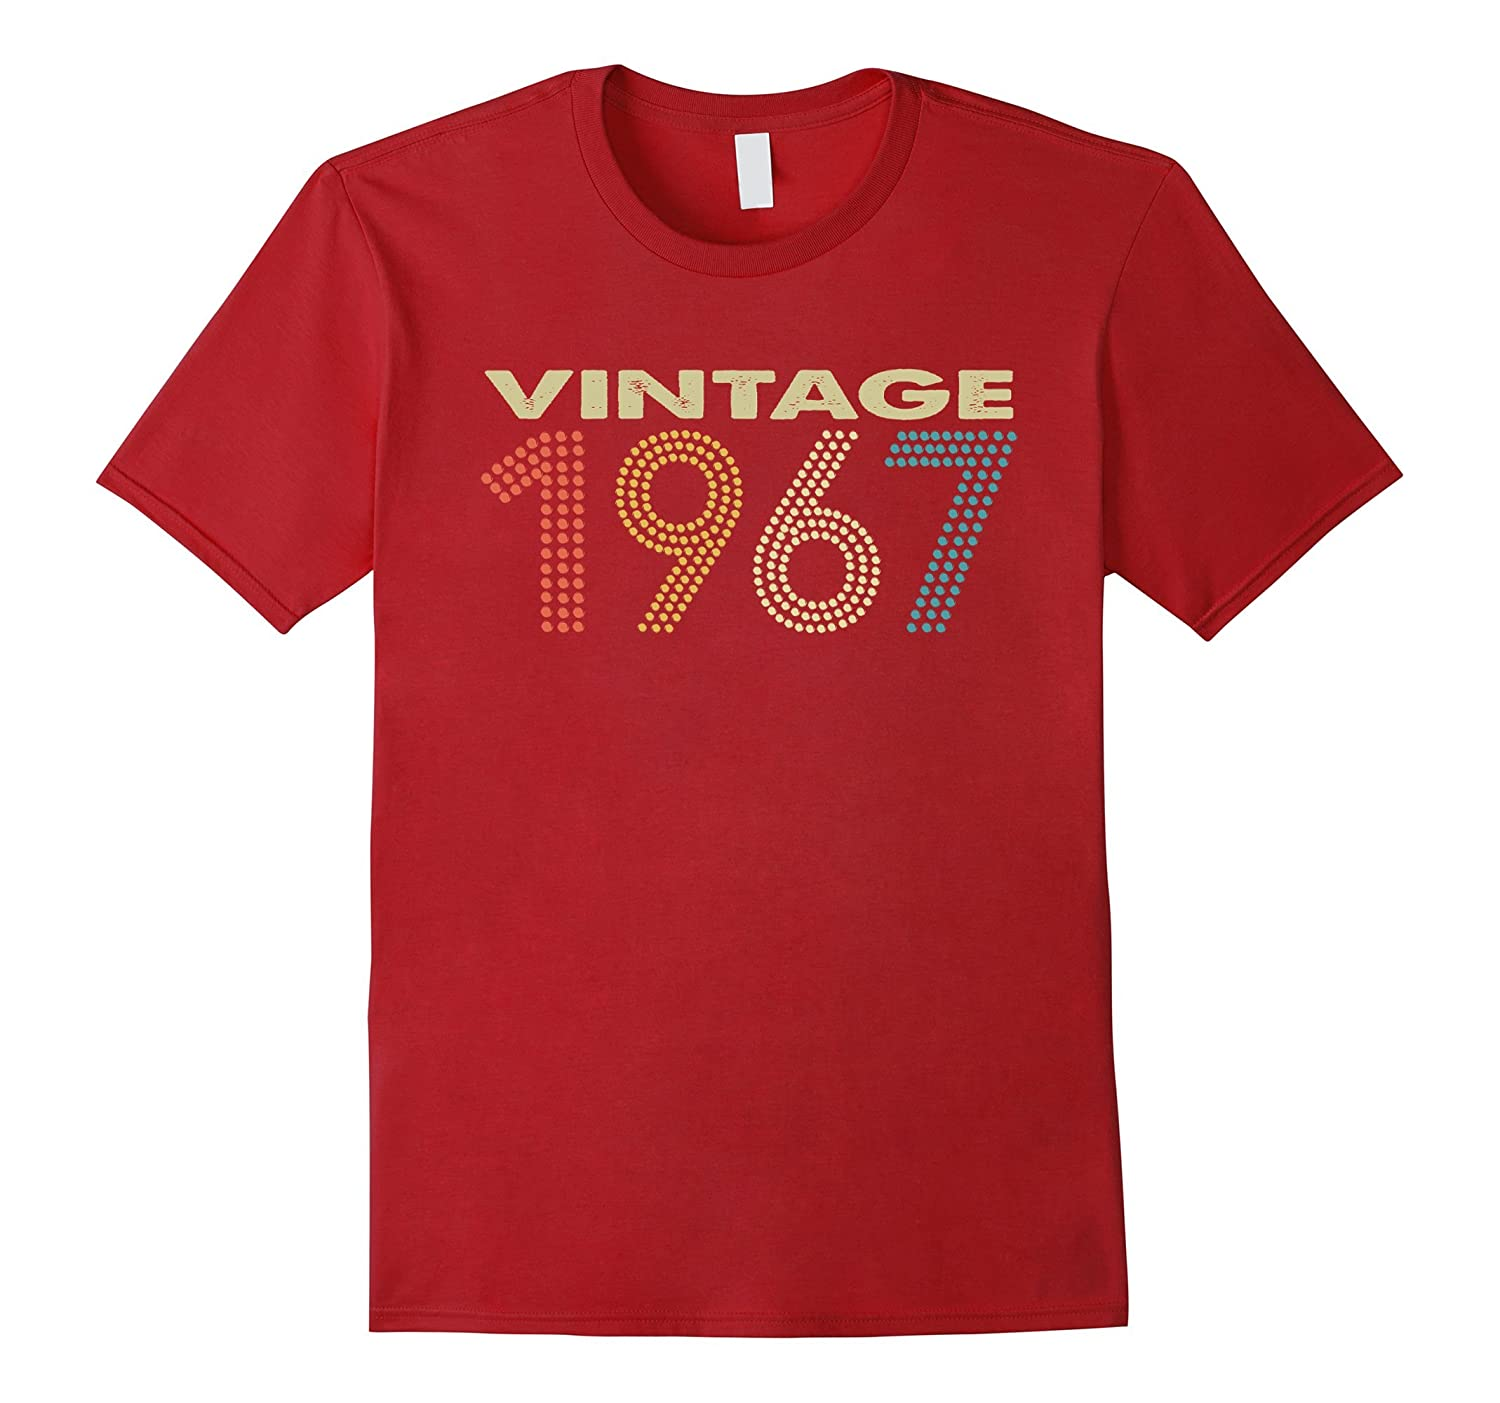 Vintage 1967 Tee Funny 50 Years Old 50th Birthday Shirt